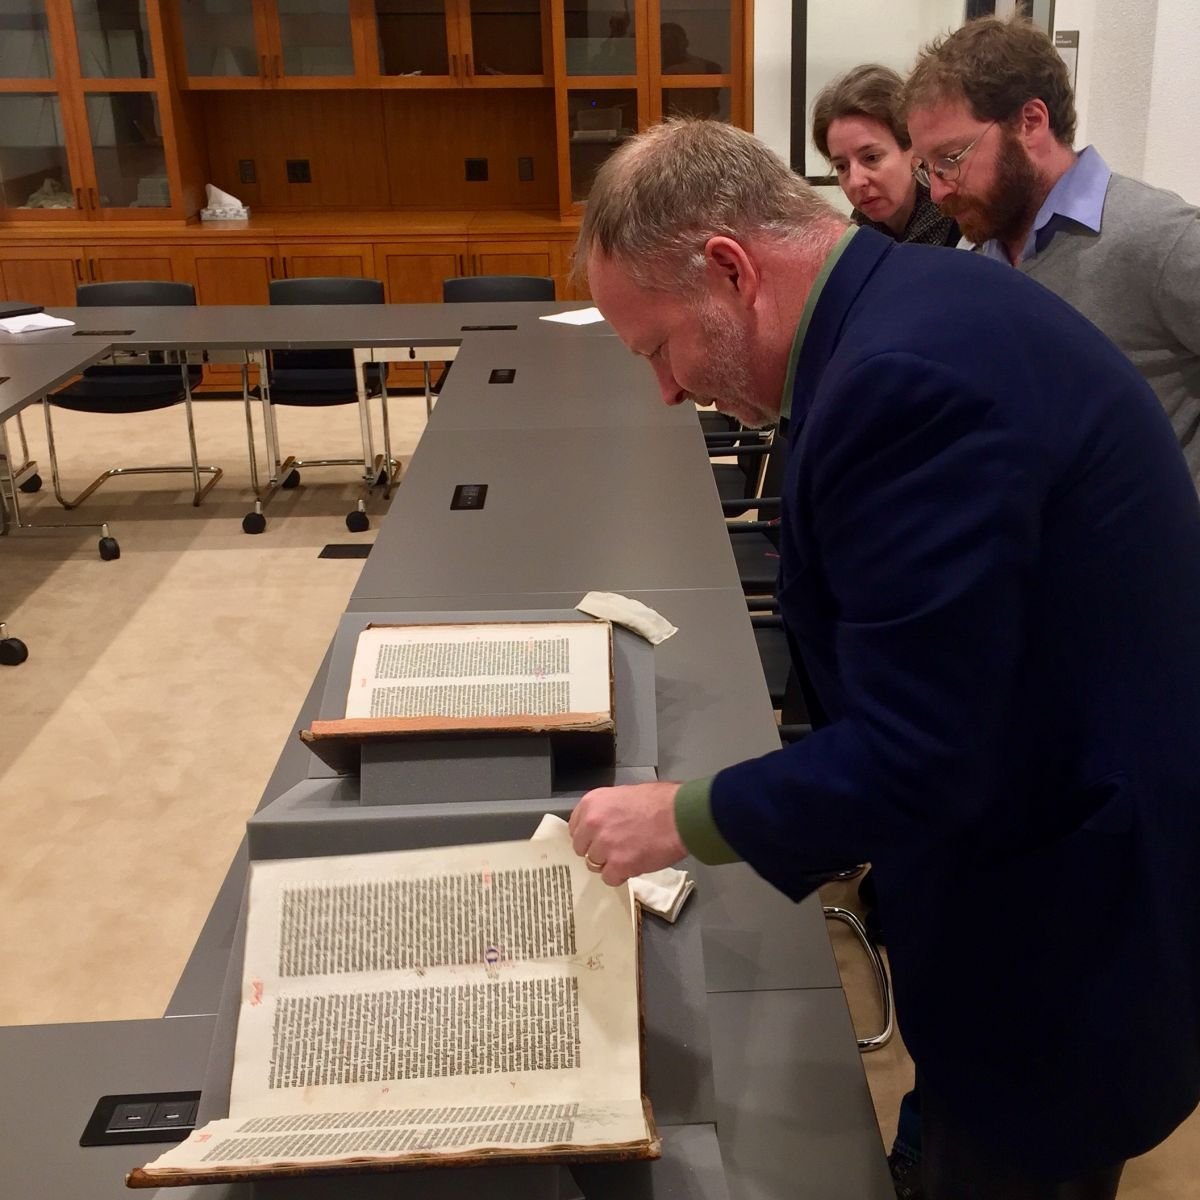 Bruce Gordon and Joel Baden examine the Gutenberg Bible